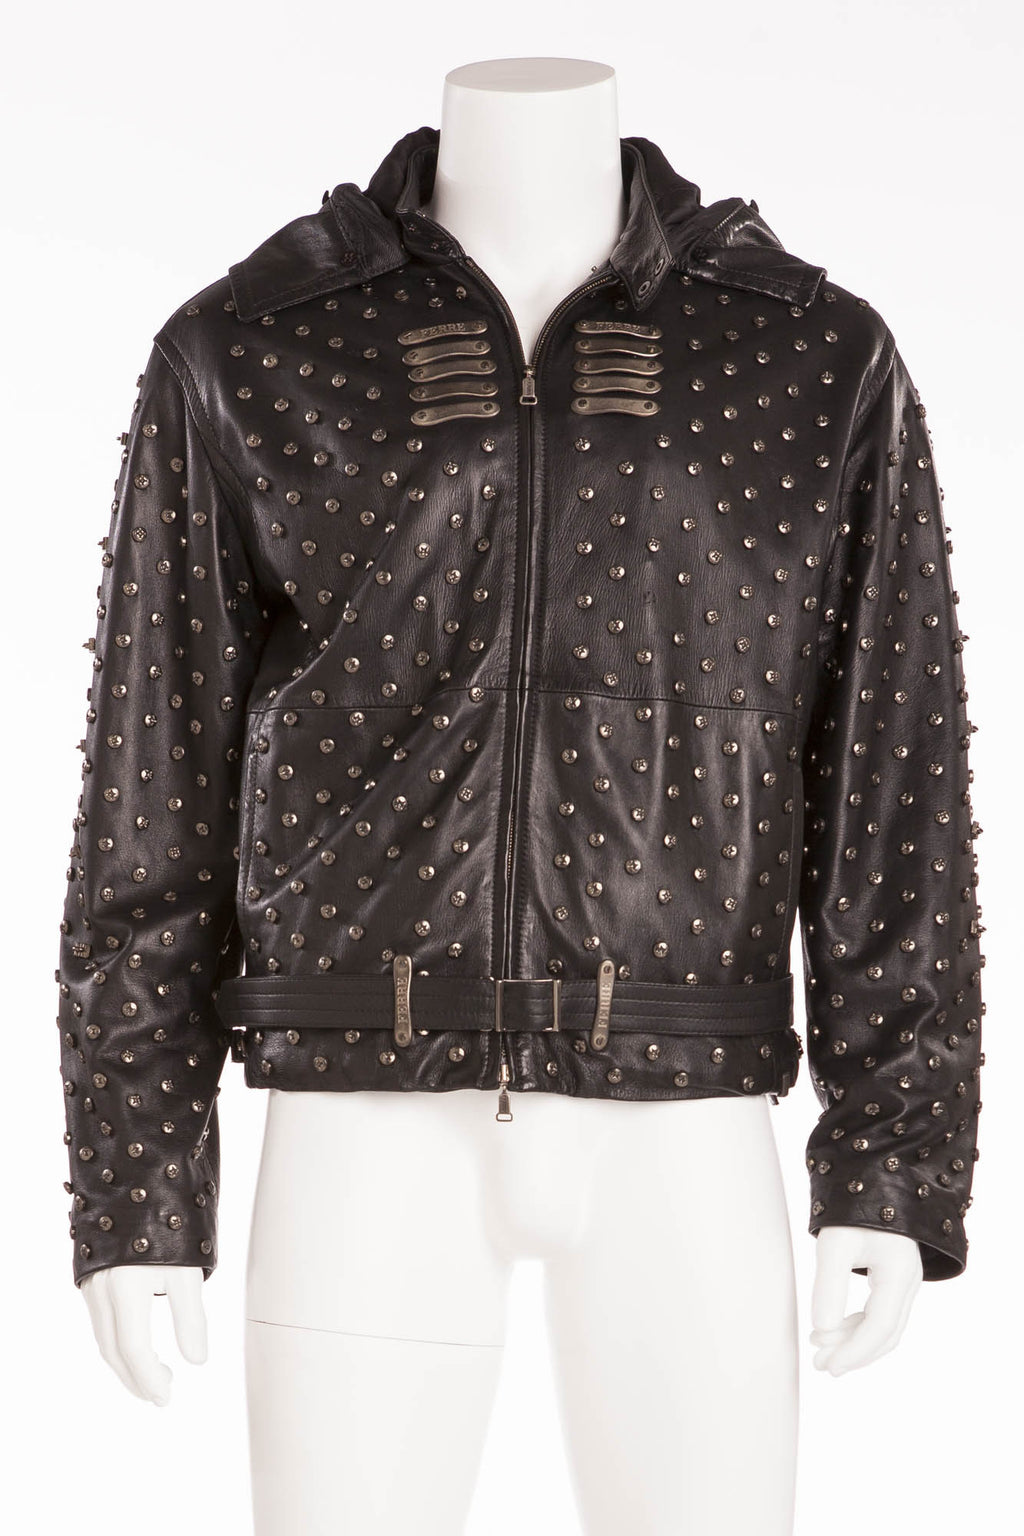 Gianfranco Ferre - Black Leather Screw Embellishment Zip Up Jacket - IT 54